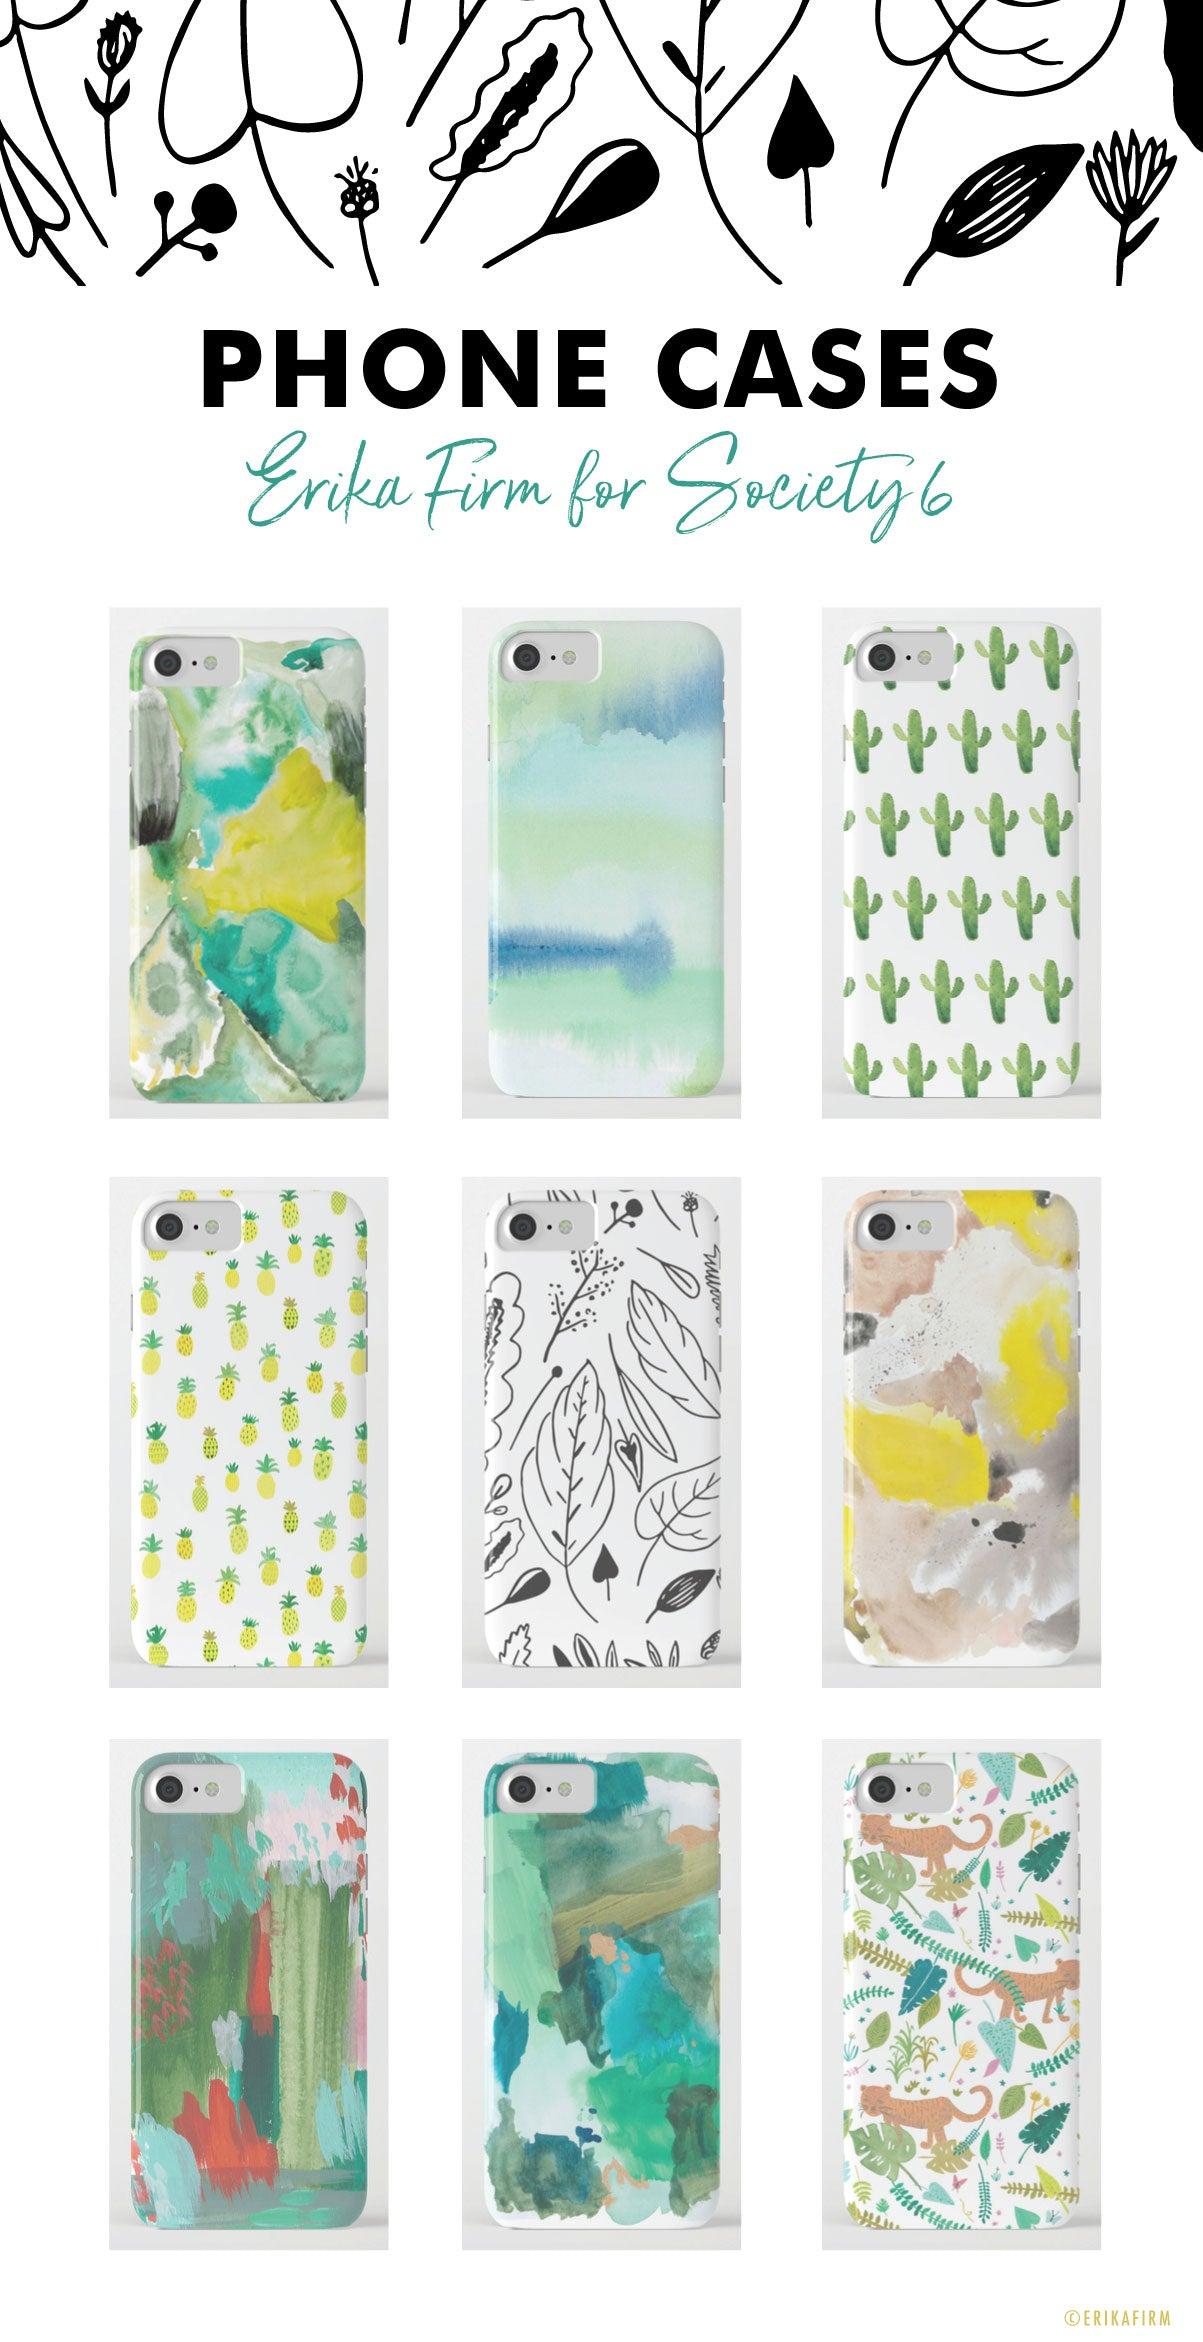 fun designer phone case designs by Erika Firm for Society 6